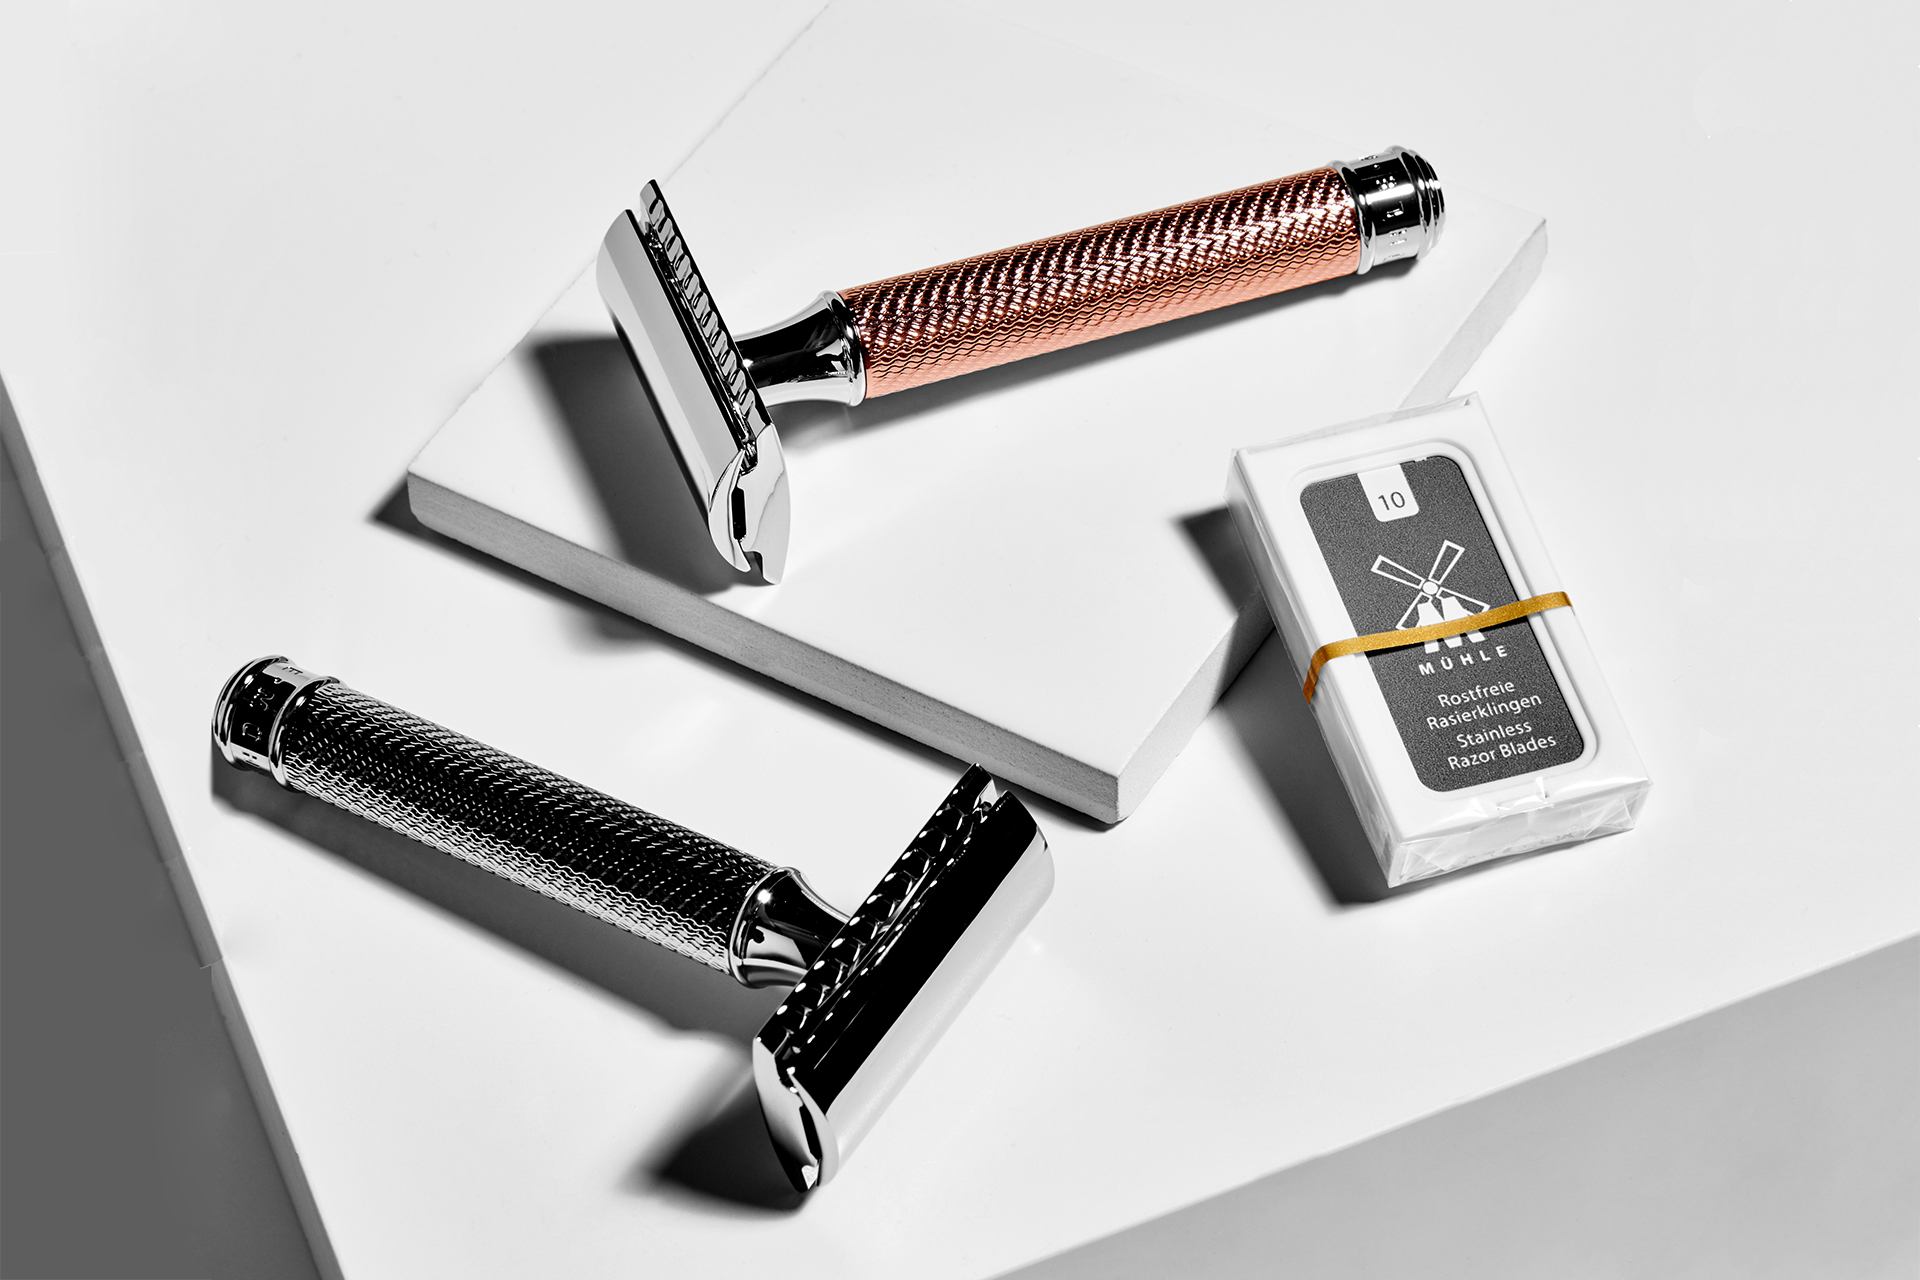 Switch to reusable products like the Muhle Silver & Rose Gold Safety Razor   eco friendly reusable razors UK at organic beauty online store CONTENT Beauty